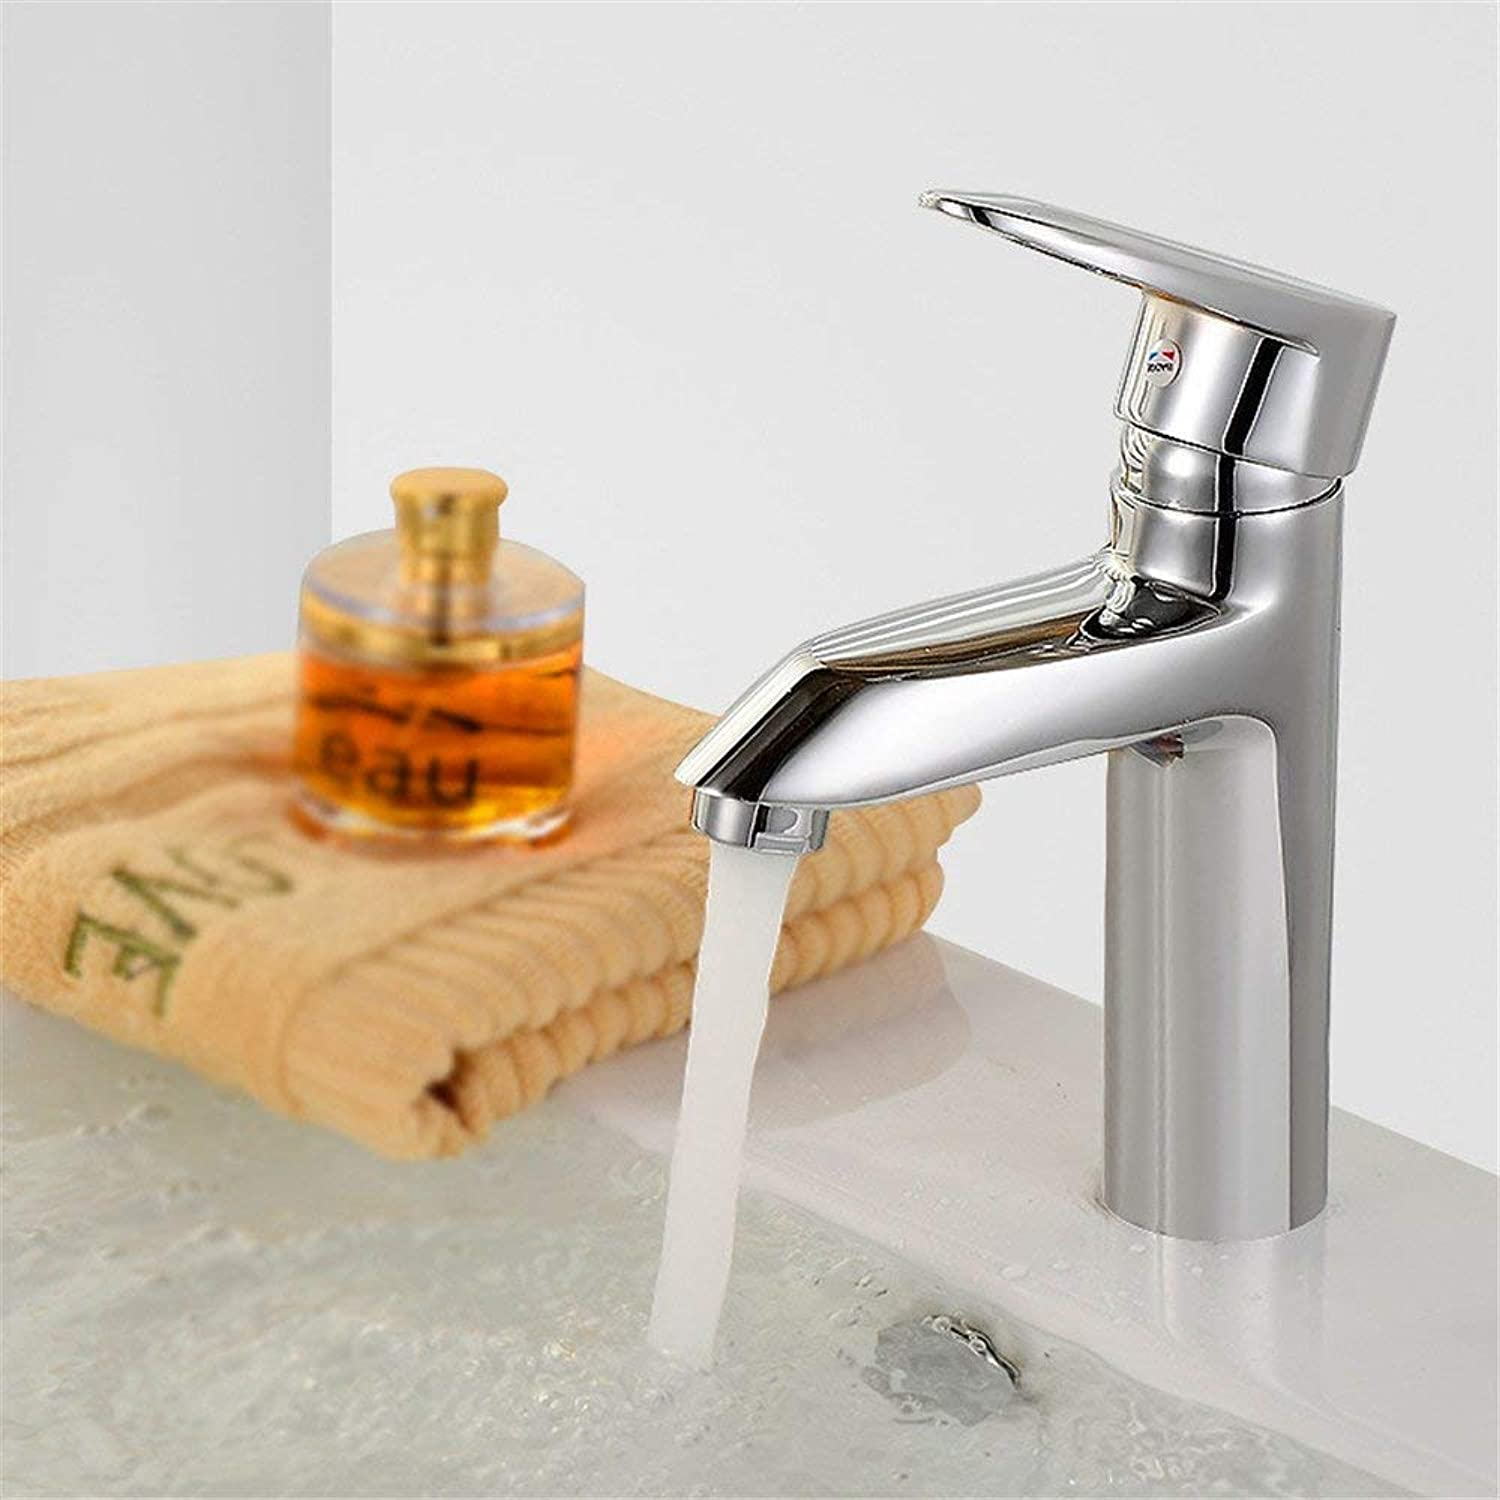 Oudan Basin Mixer Tap Bathroom Sink Faucet Basin mixer SINGLE LEVER SINGLE HOLE full copper cold water faucet Washbasin Faucet with high diamond Single Hole